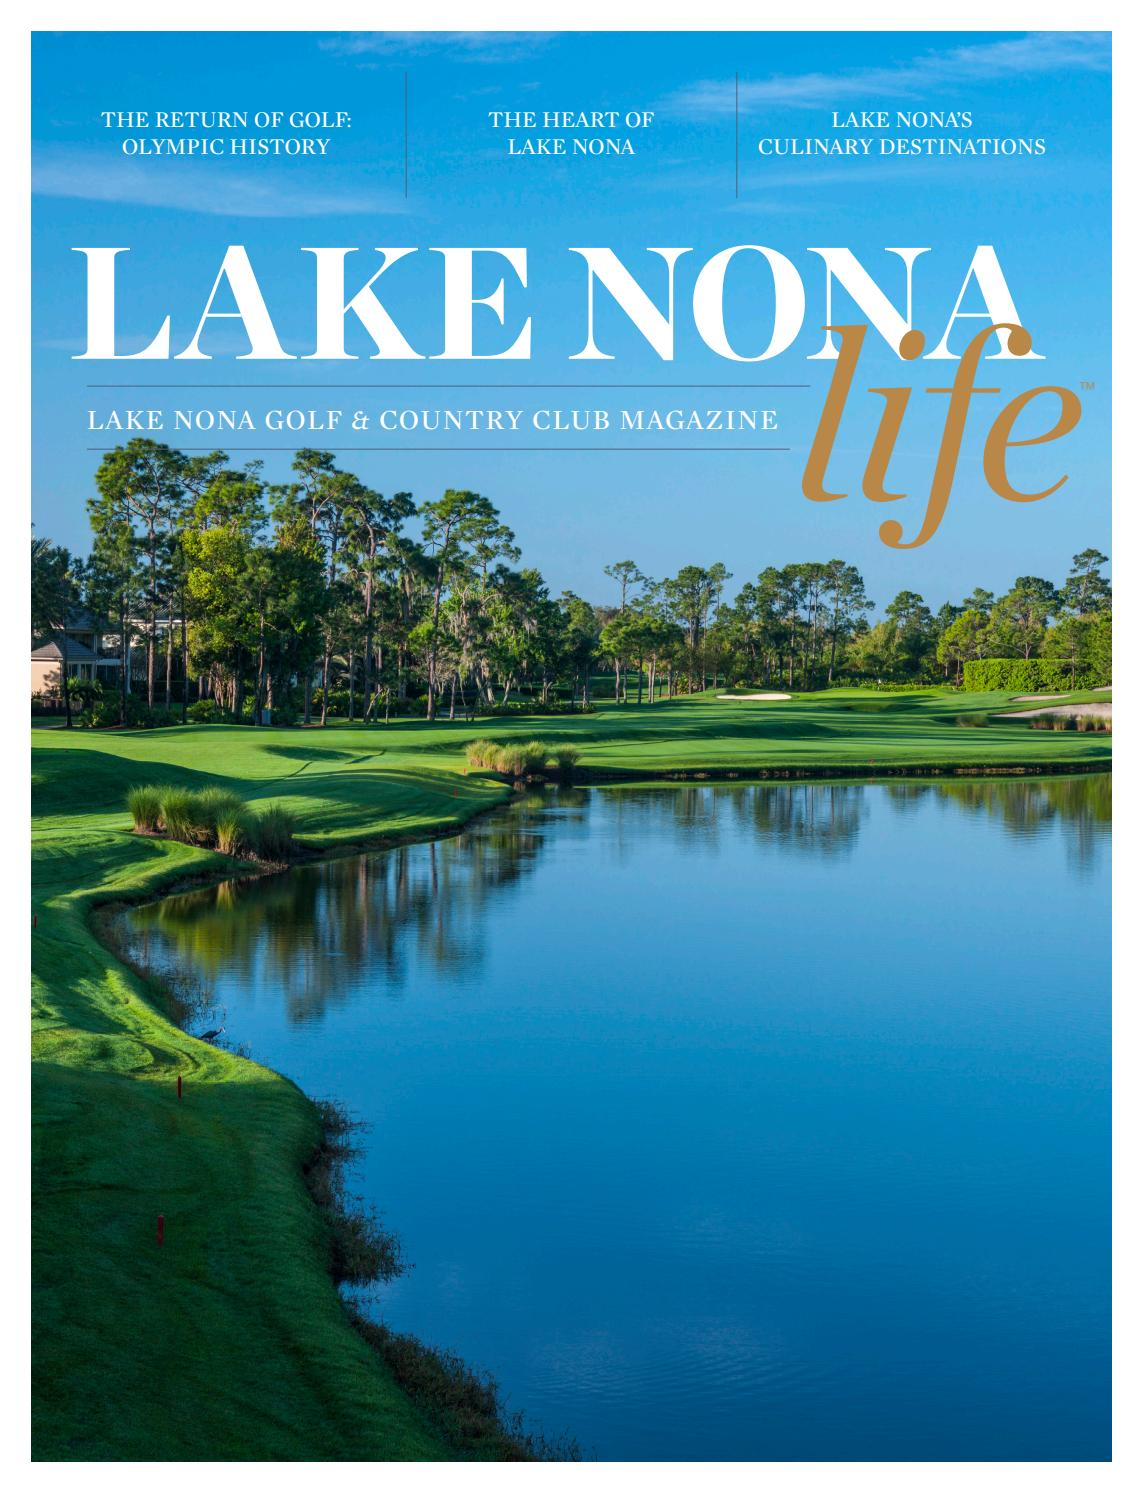 Lake Nona Life - Volume VII by Lake Nona Golf & Country Club - issuu